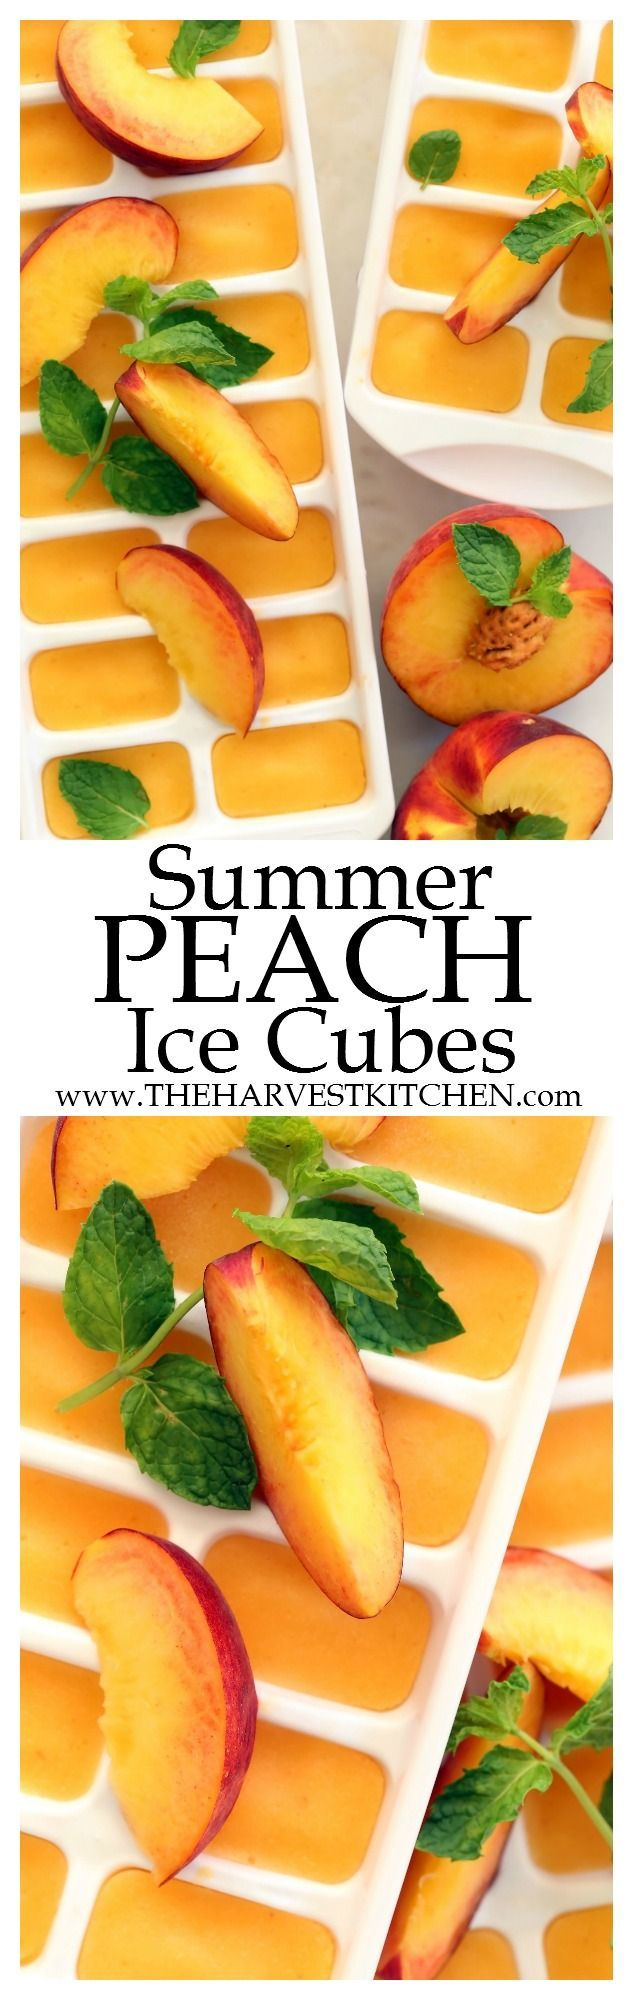 These Summer Peach Ice Cubes scream of summer and they add a delicious pop of flavor to your favorite iced tea. You can use fresh peaches when they're juicy and ripe in season, but frozen organic peaches work just as well.   clean eating     healthy recip (alcoholic drinks recipes)